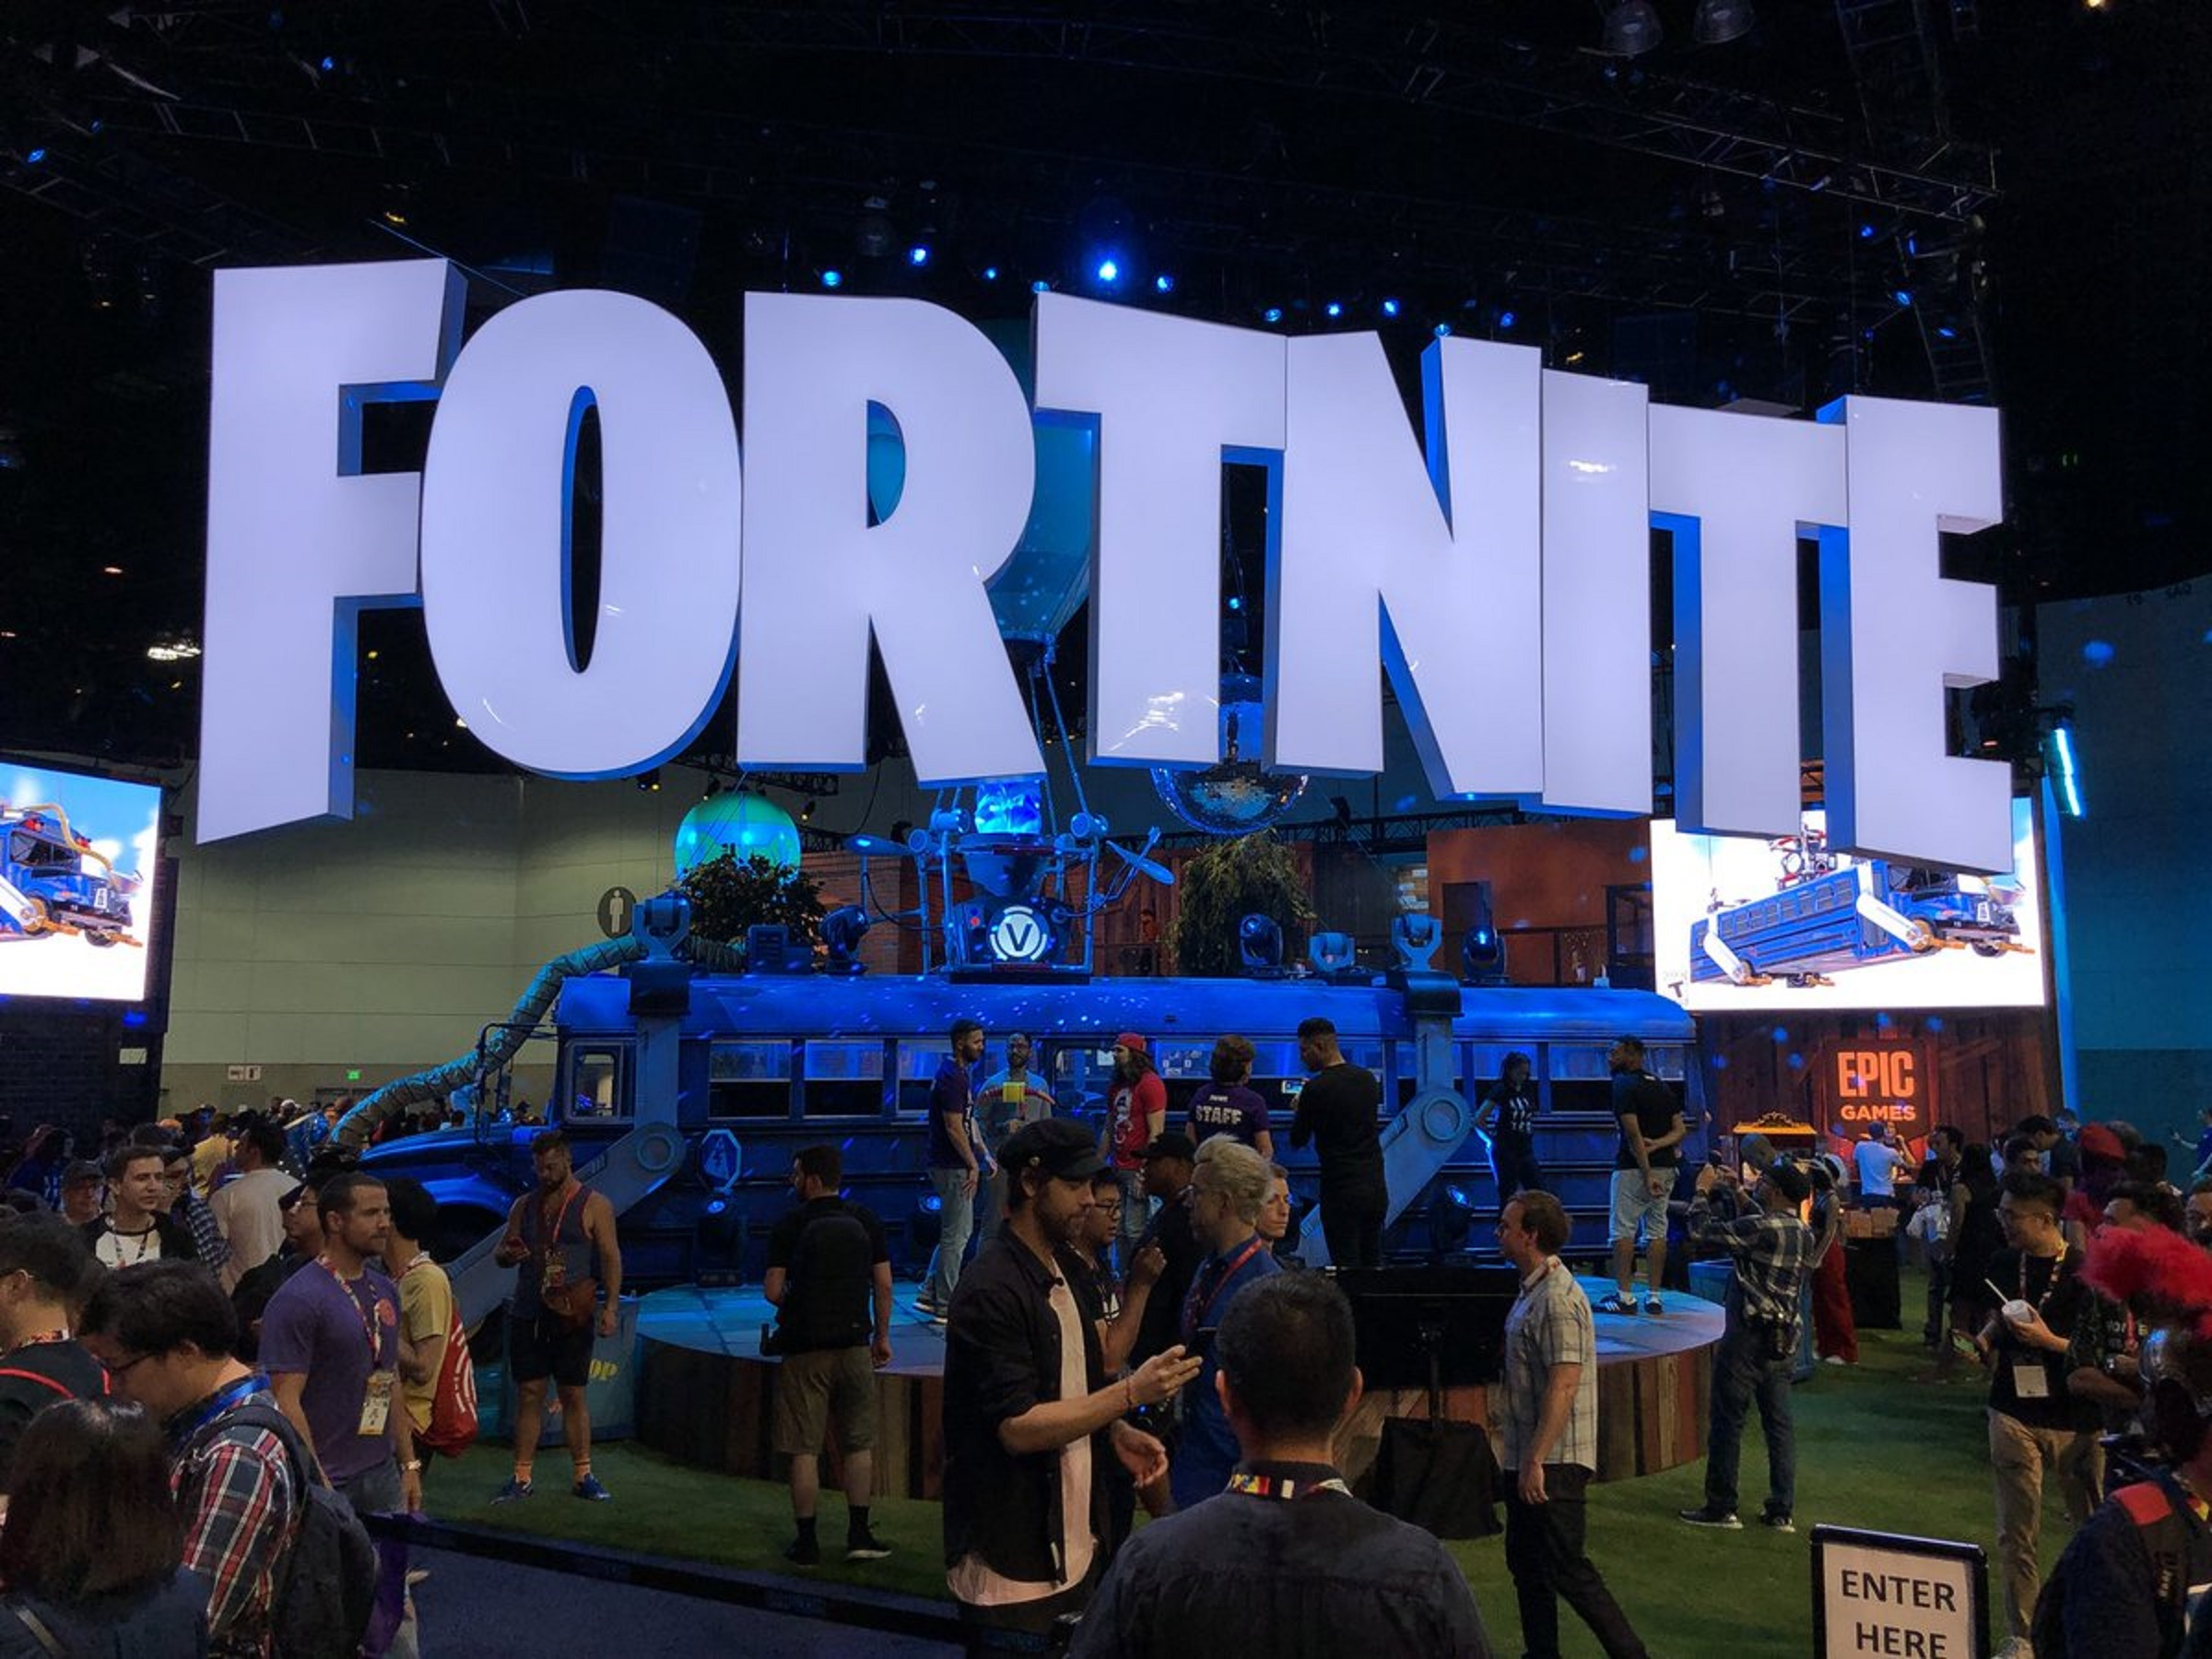 Fortnite's floor space at E3 2018